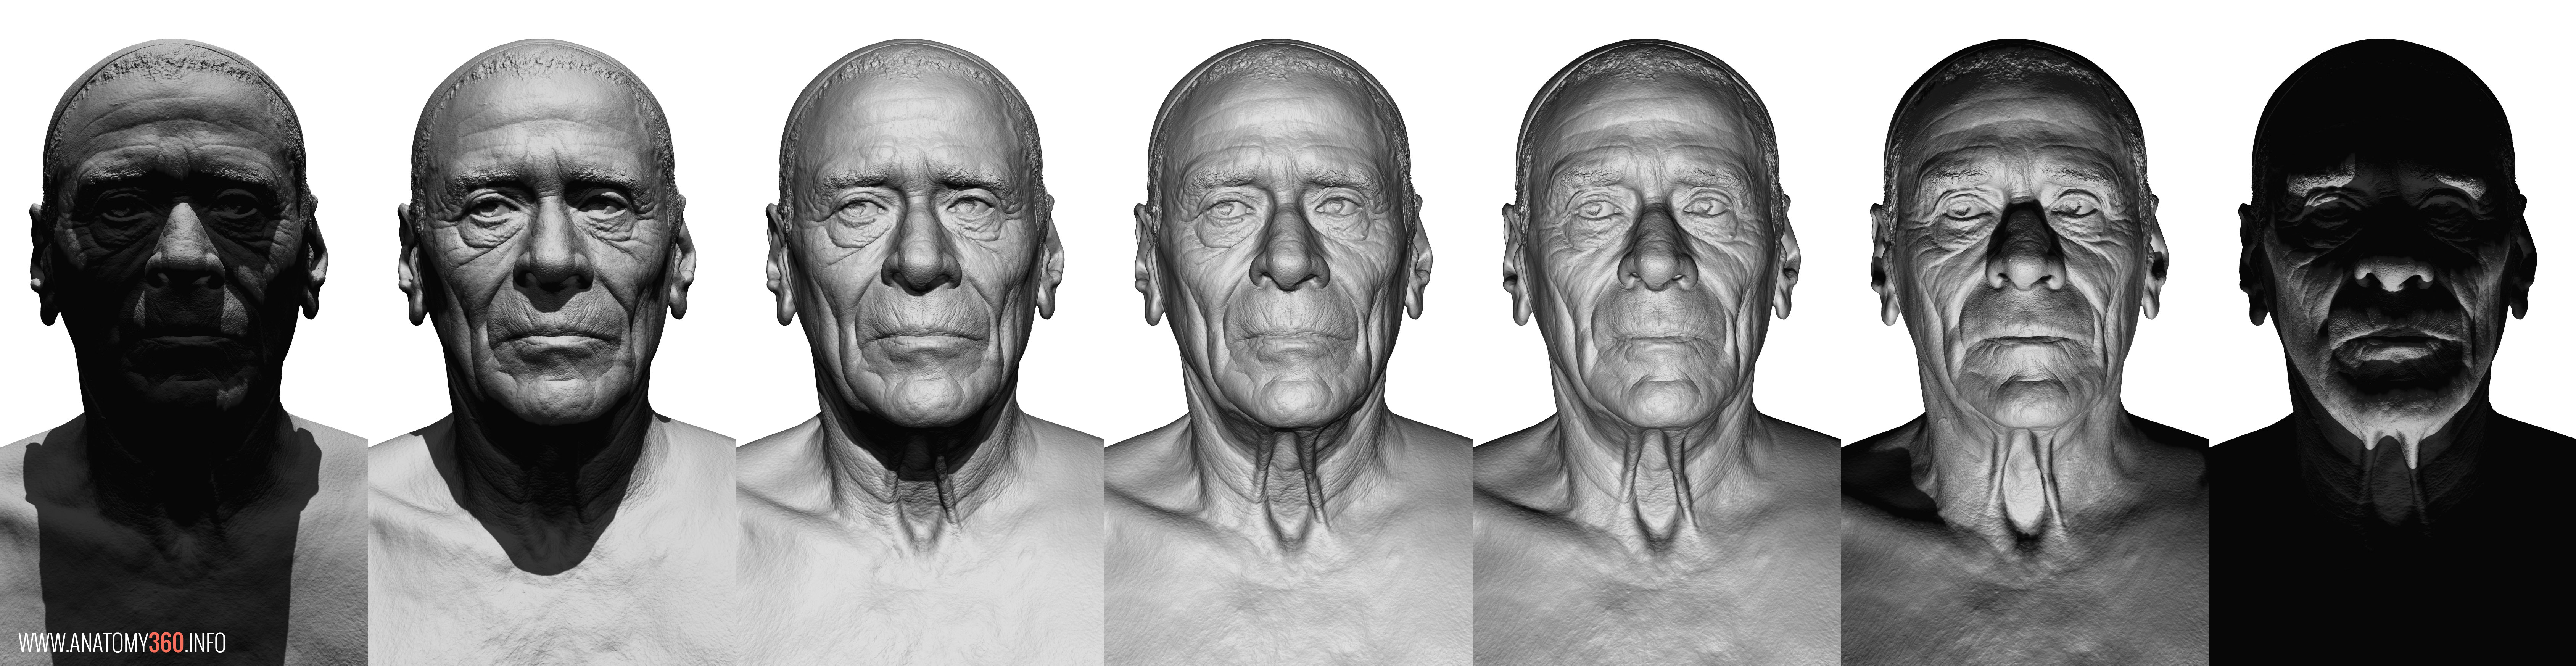 Lighting-02_S  sc 1 st  Anatomy 360 & Head and Face Reference | Anatomy 360 azcodes.com